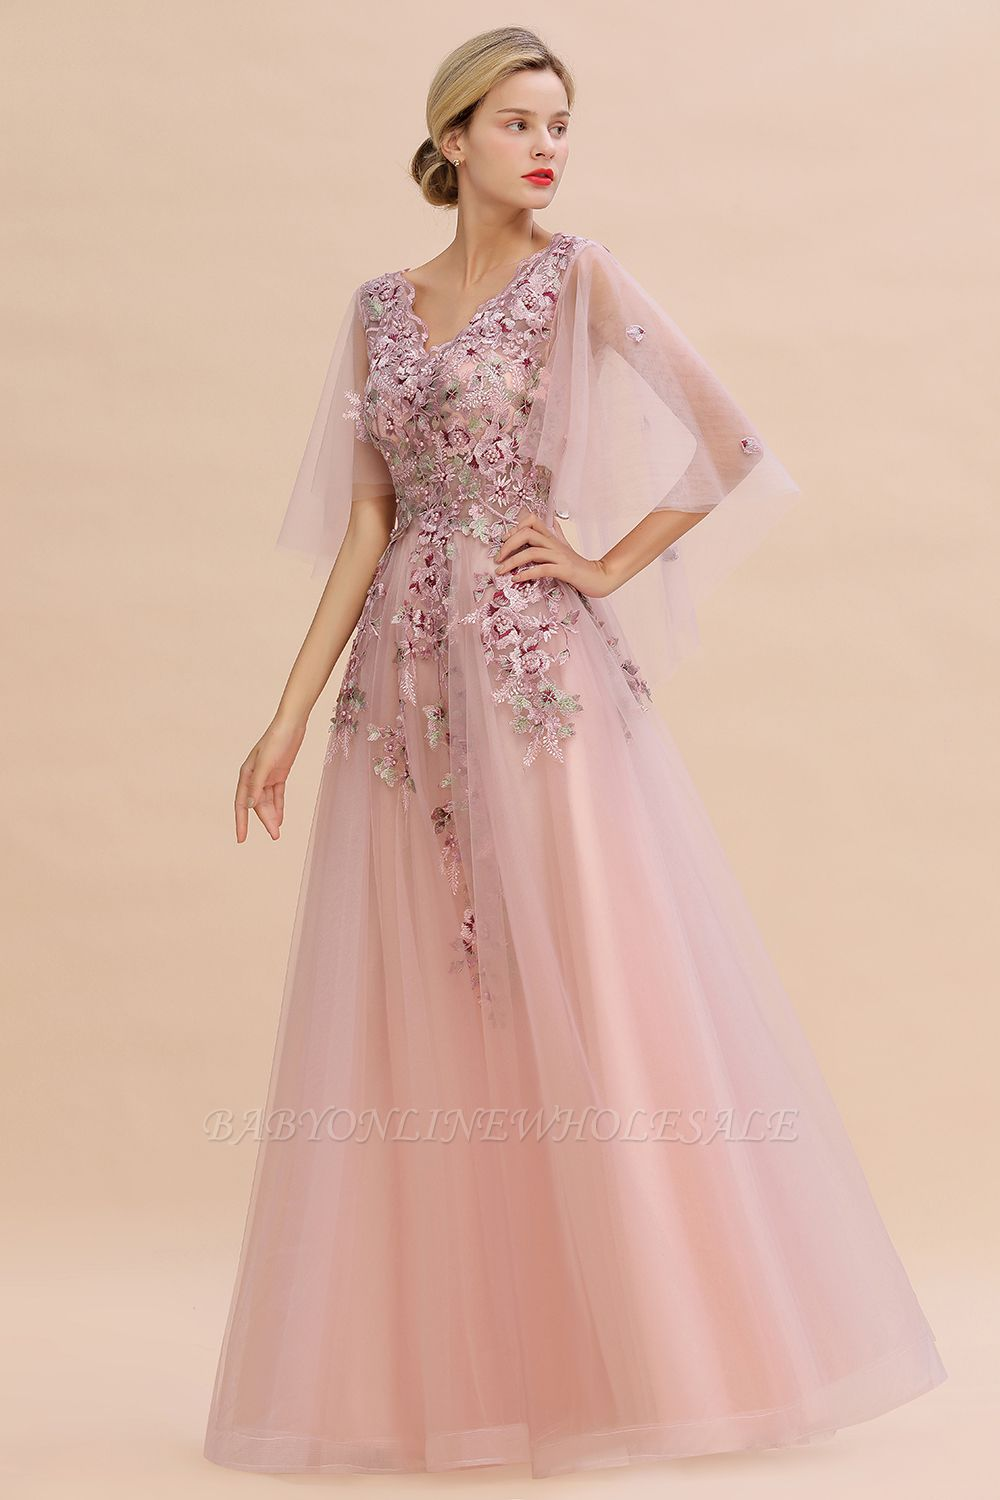 Ruffy Sleeves aline Romantic Tulle Evening Maxi Gown Pearl Lace Appliques Party Dress